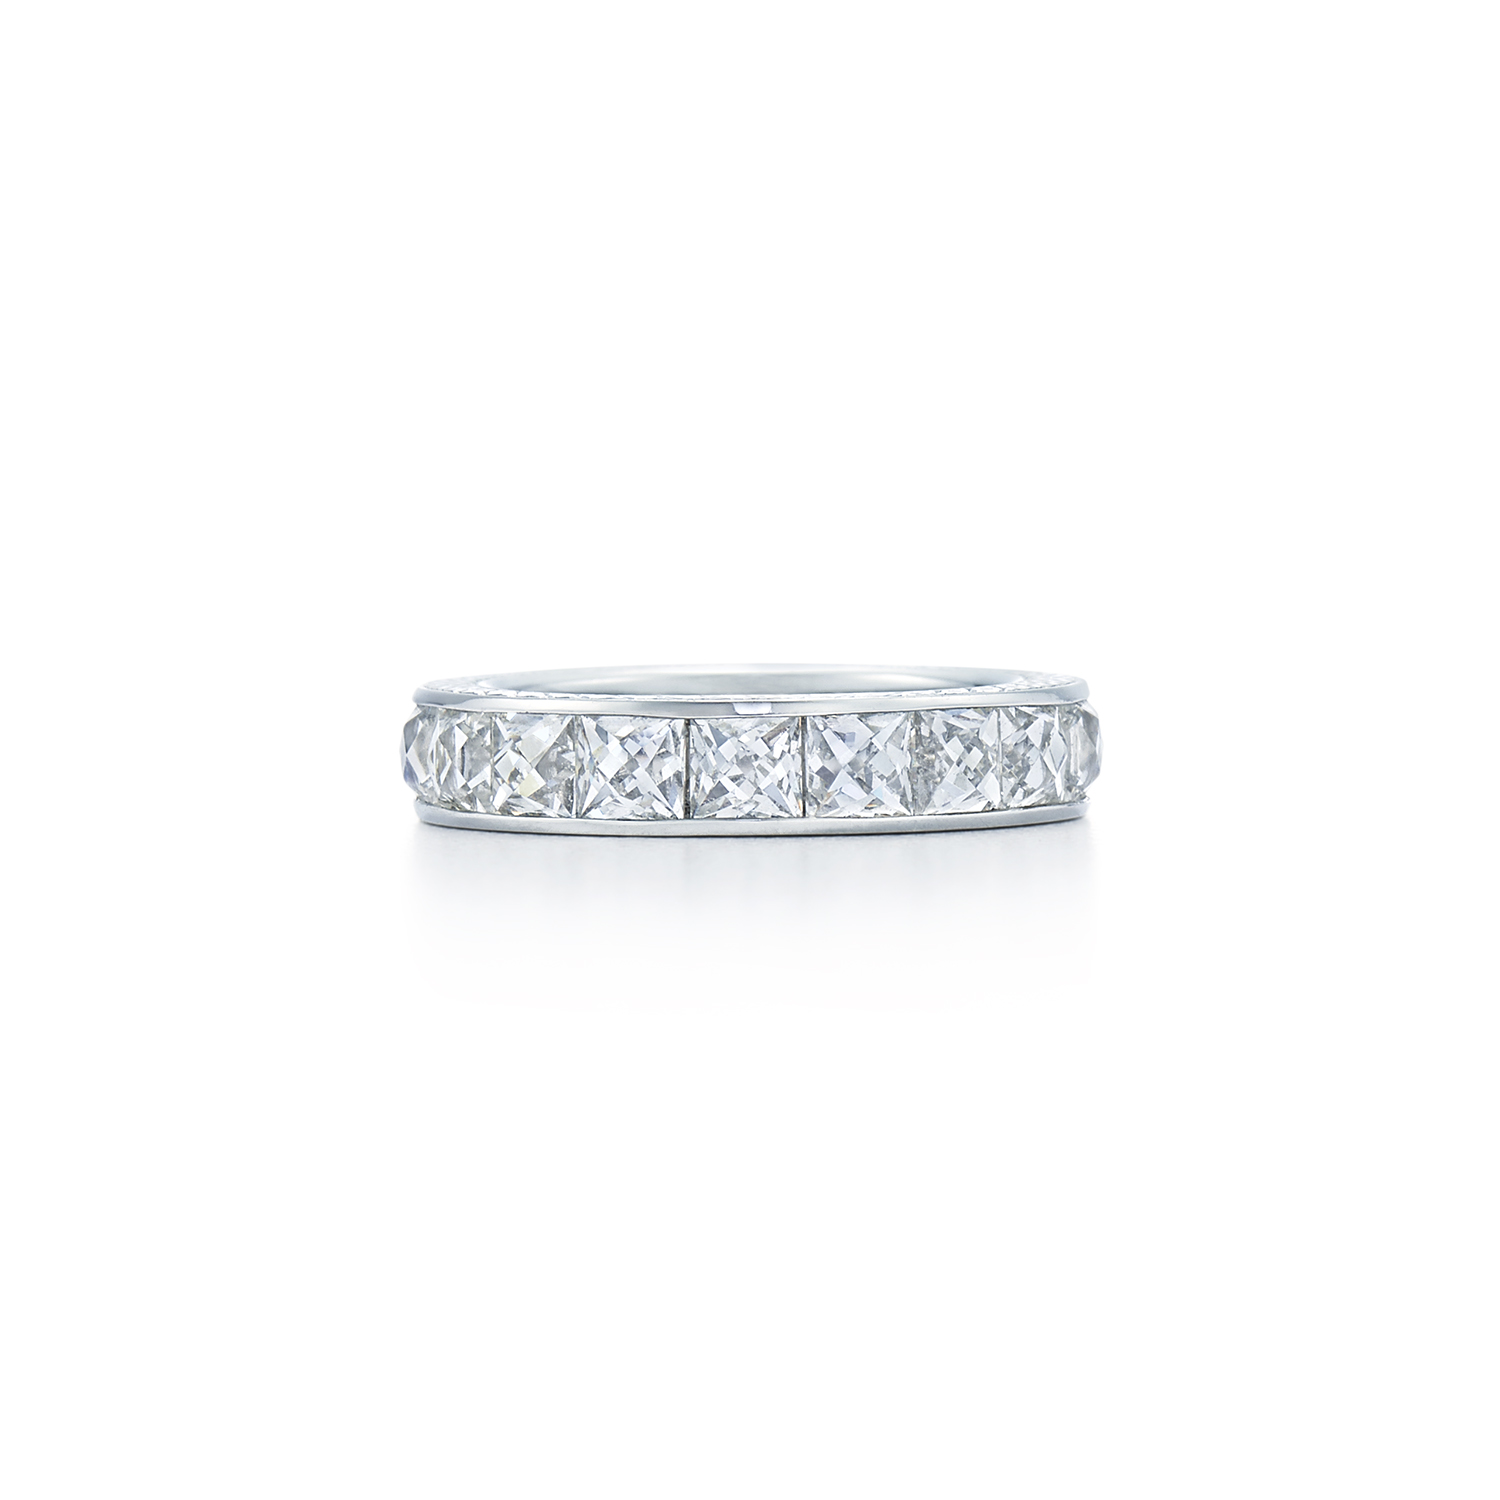 Signed Fred Leighton French Cut Diamond Eternity Band Ring R1008-DIA